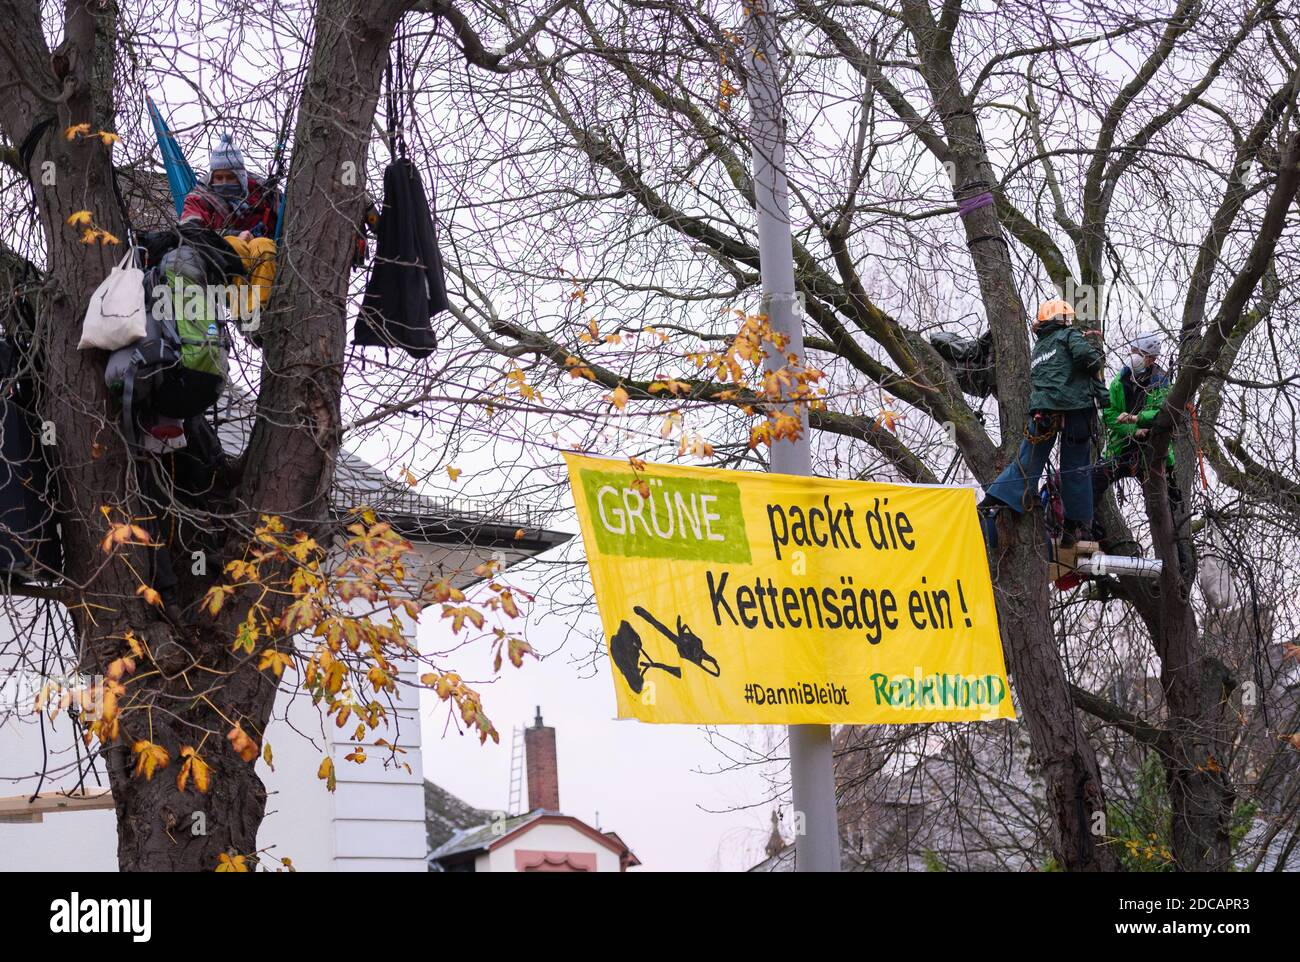 """Wiesbaden, Germany. 20th Nov, 2020. Activists stop with a demo banner """"Green packs the chainsaw! #Danni stays Robin Wood"""" trees. Activists of Robin Wood, environmental and nature conservation organisation, have occupied two trees in front of the party headquarters of the Hessian Greens in the state capital. The organisation is protesting against the clearings in connection with the expansion of the A49 and wants to remind the Greens in Hesse of their political responsibility. Credit: Andreas Arnold/dpa/Alamy Live News Stock Photo"""